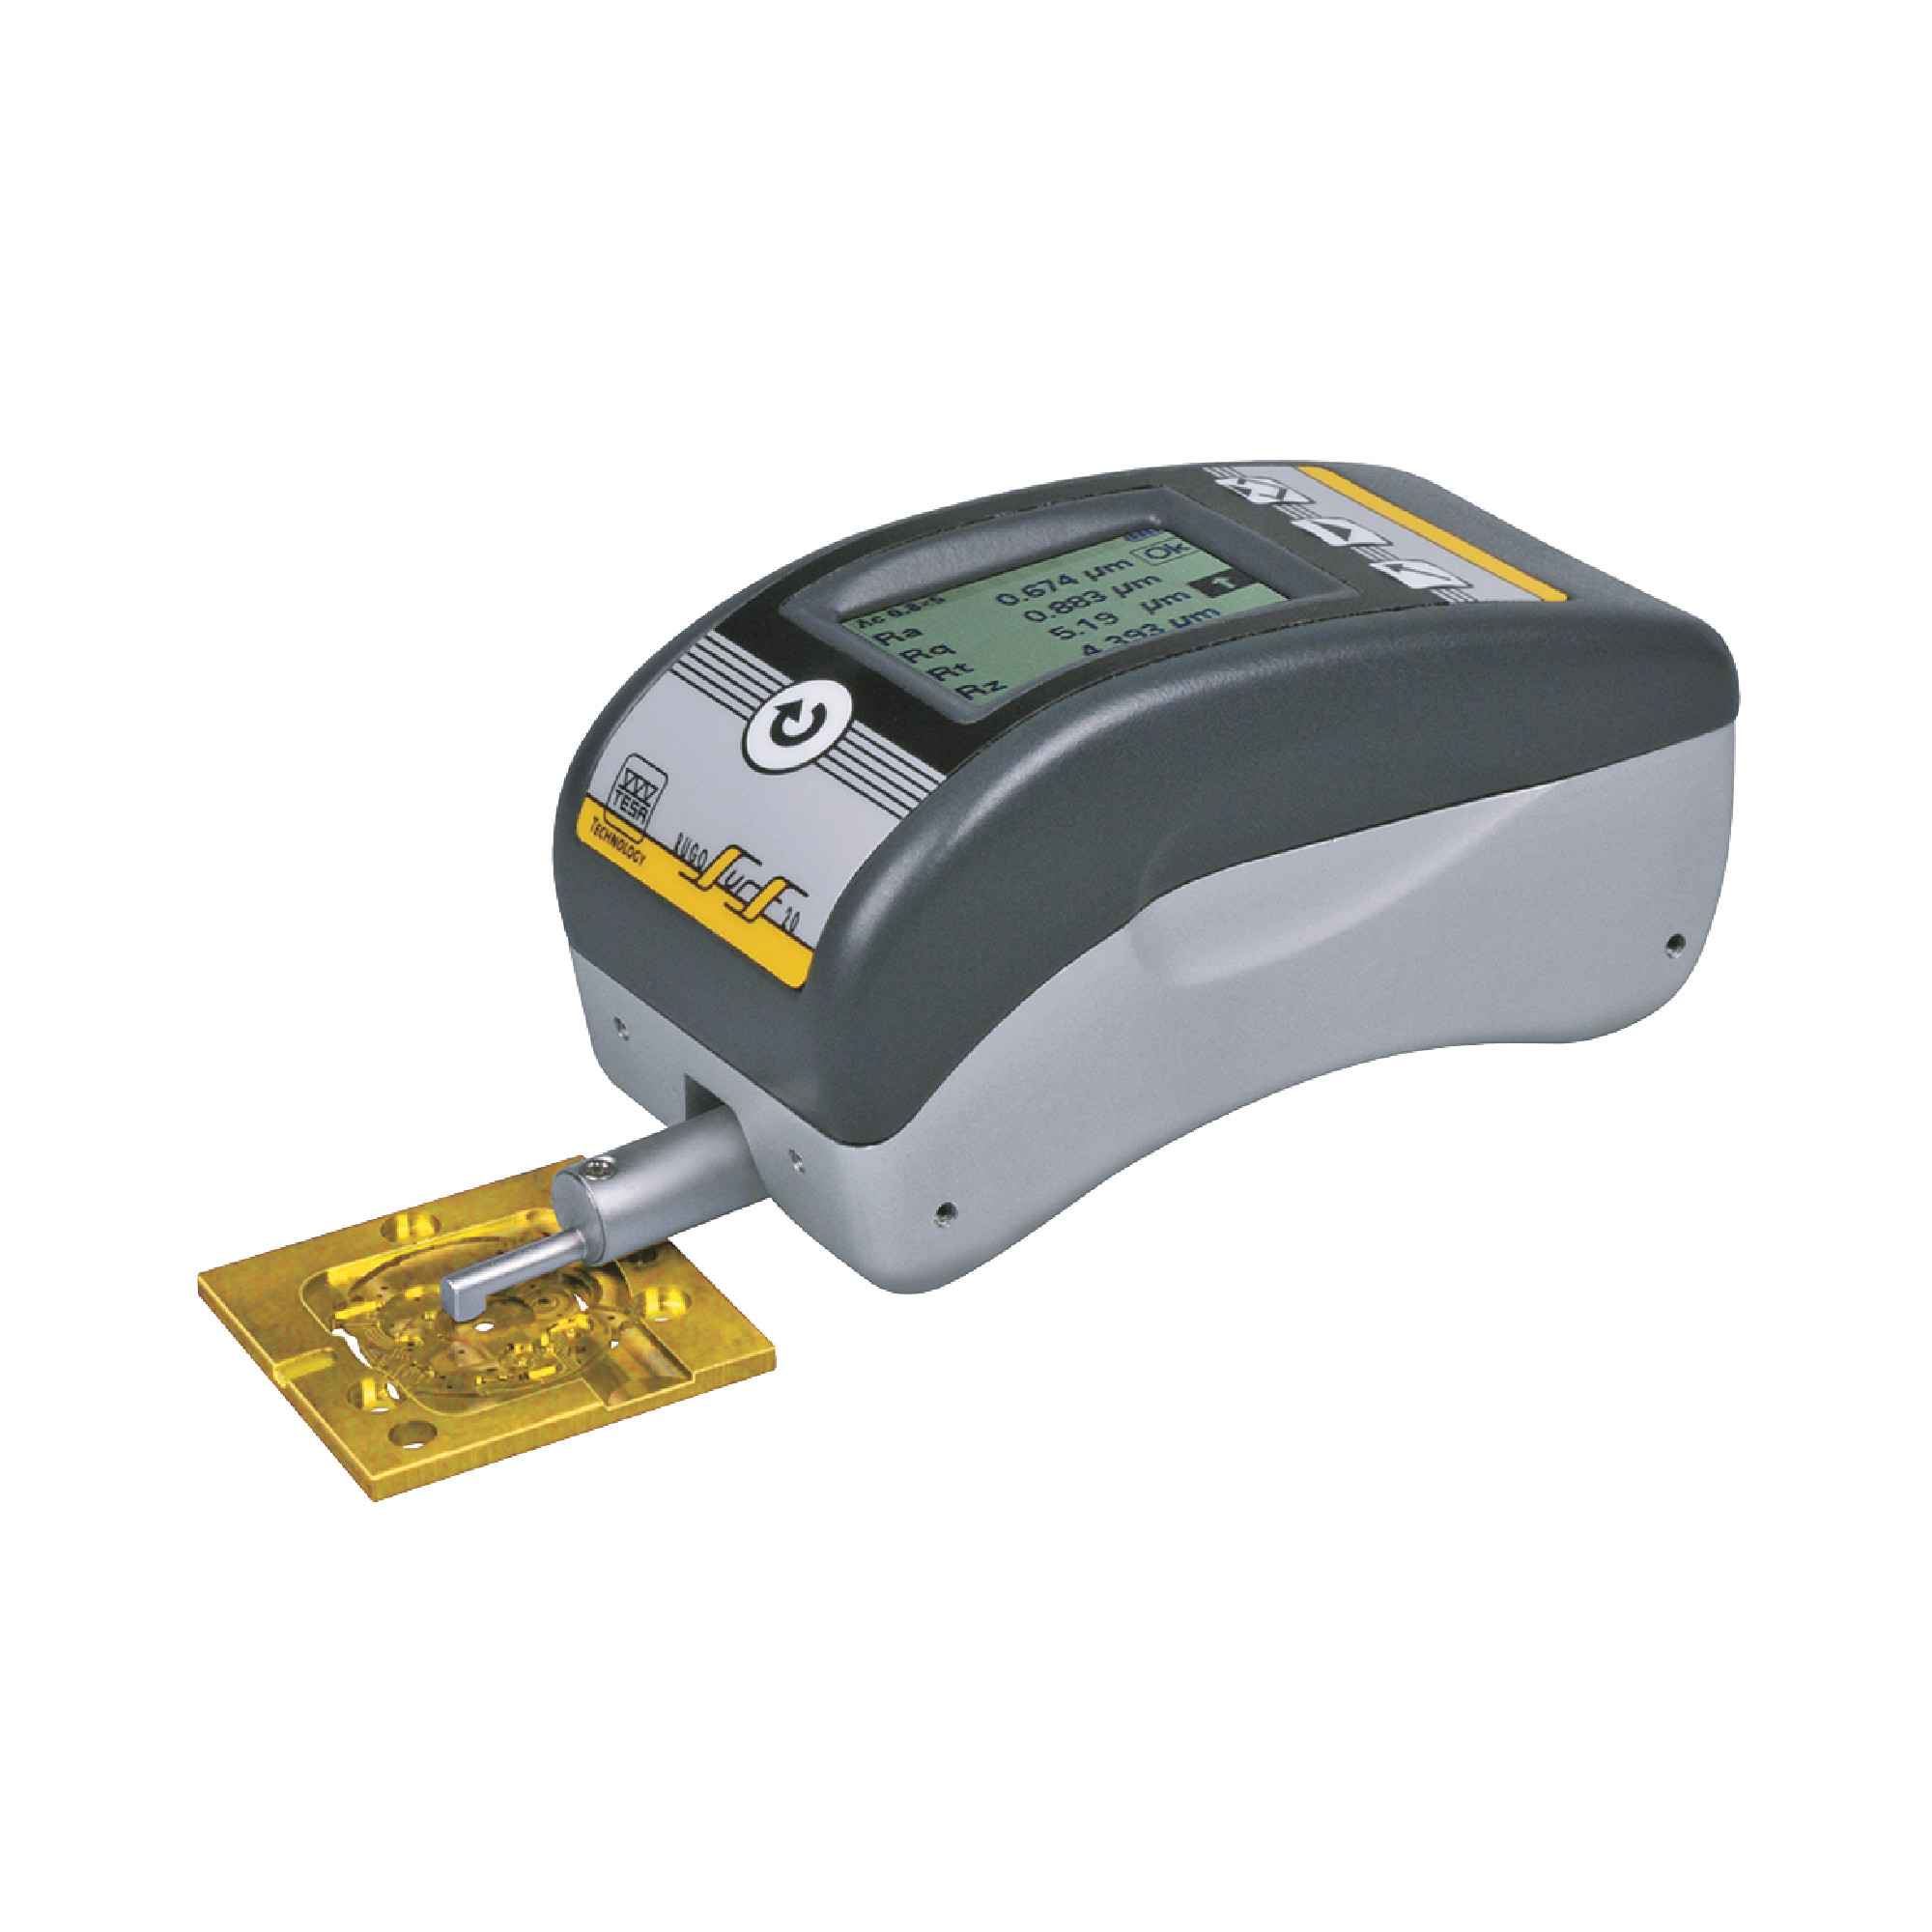 Rugosurf 20 Surface Roughness Gage